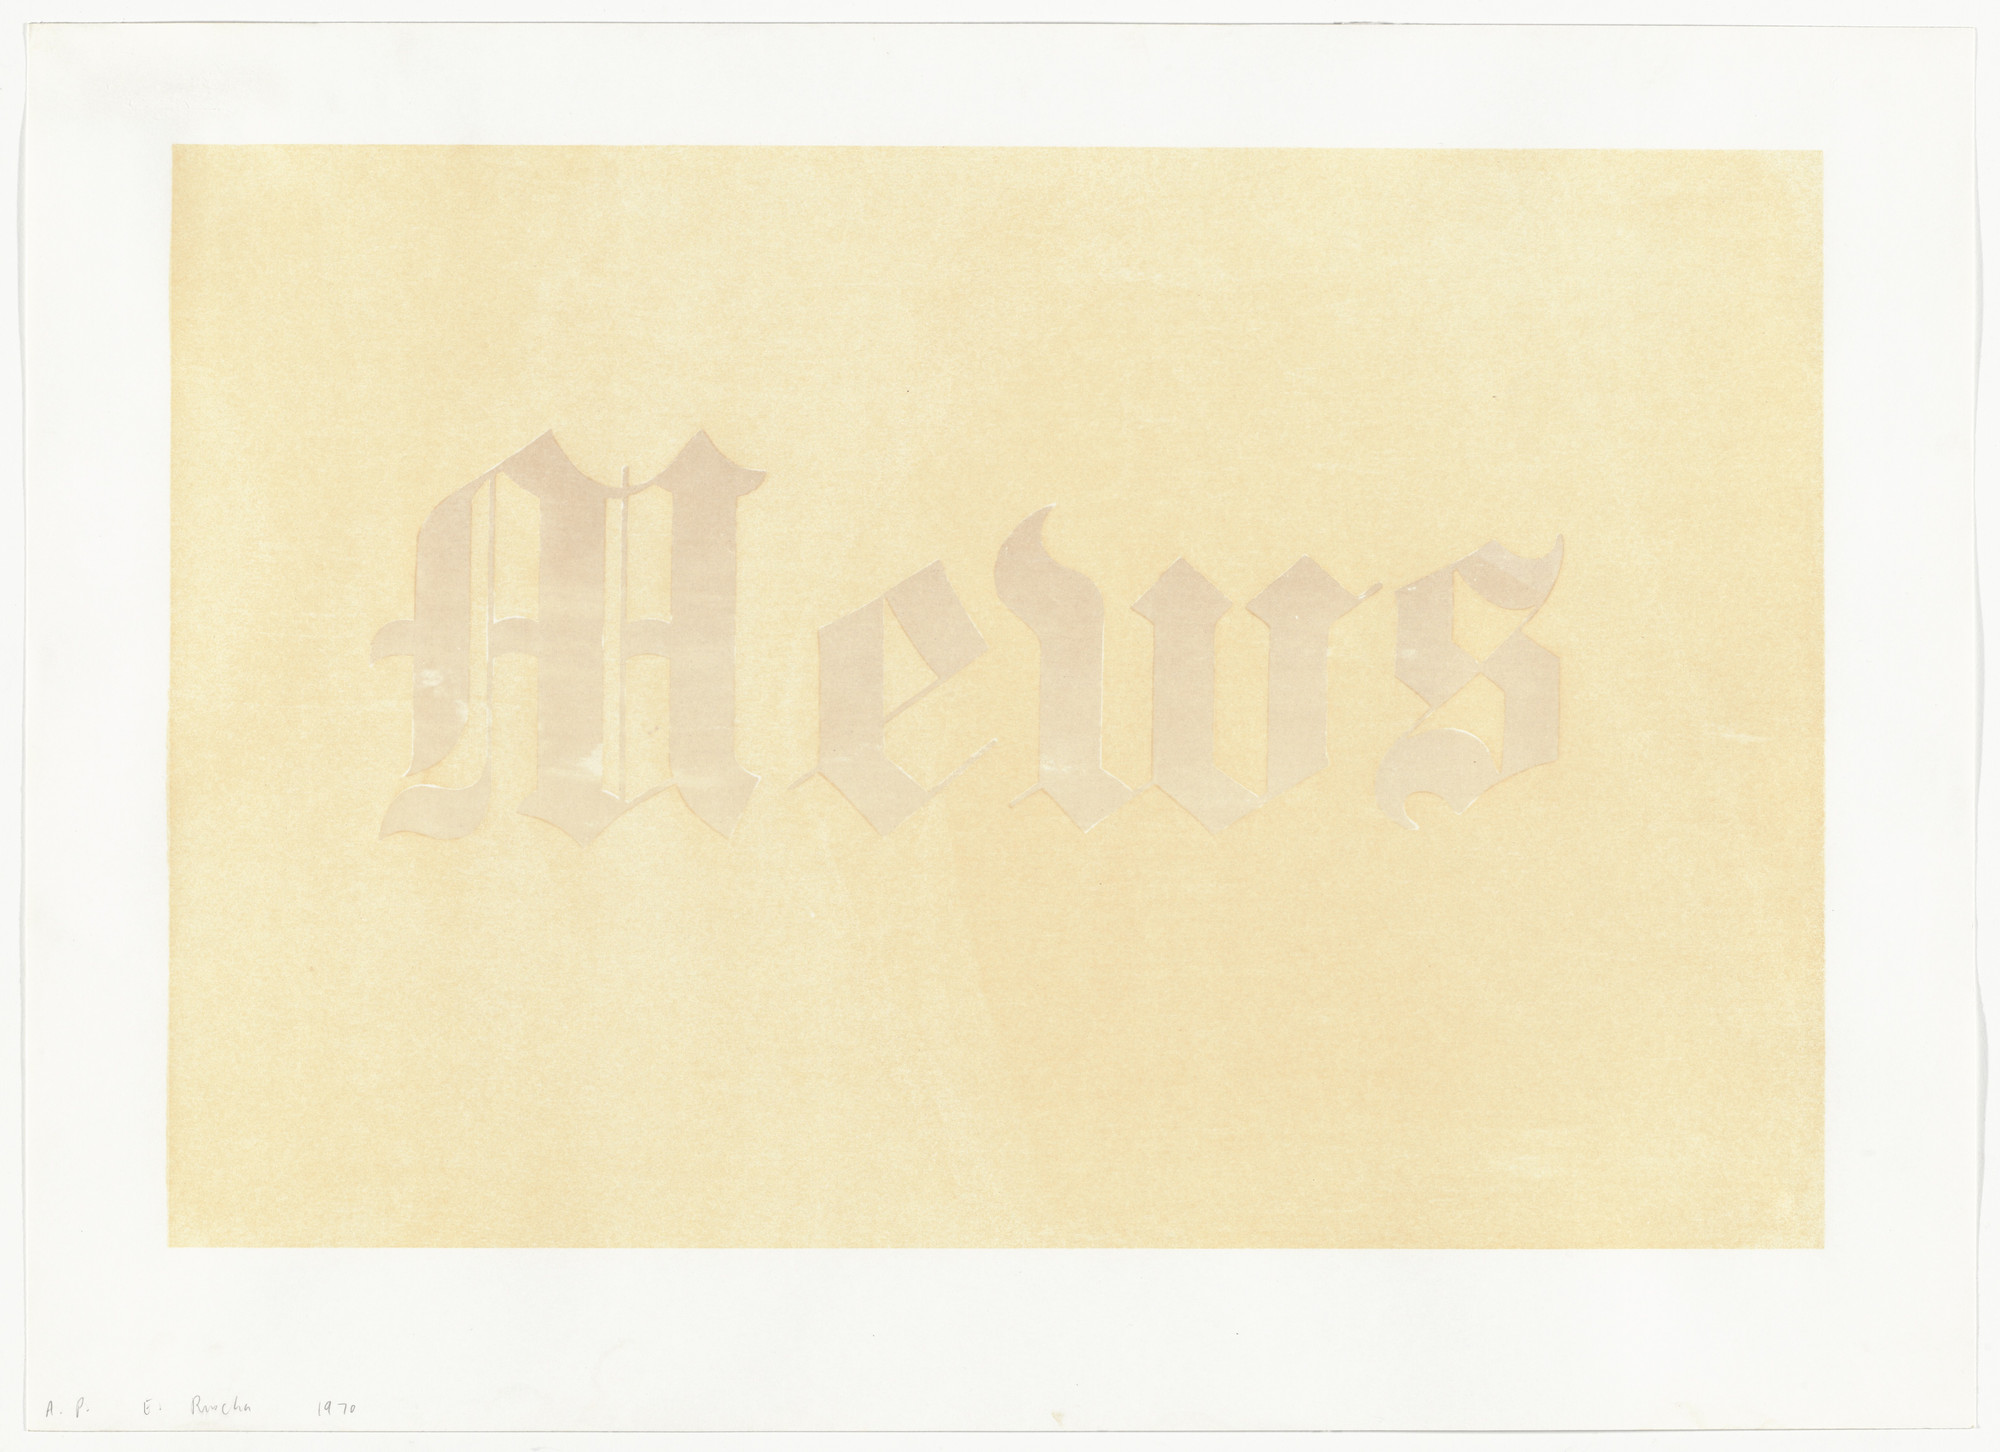 Edward Ruscha. Mews from News, Mews, Pews, Brews, Stews & Dues. 1970